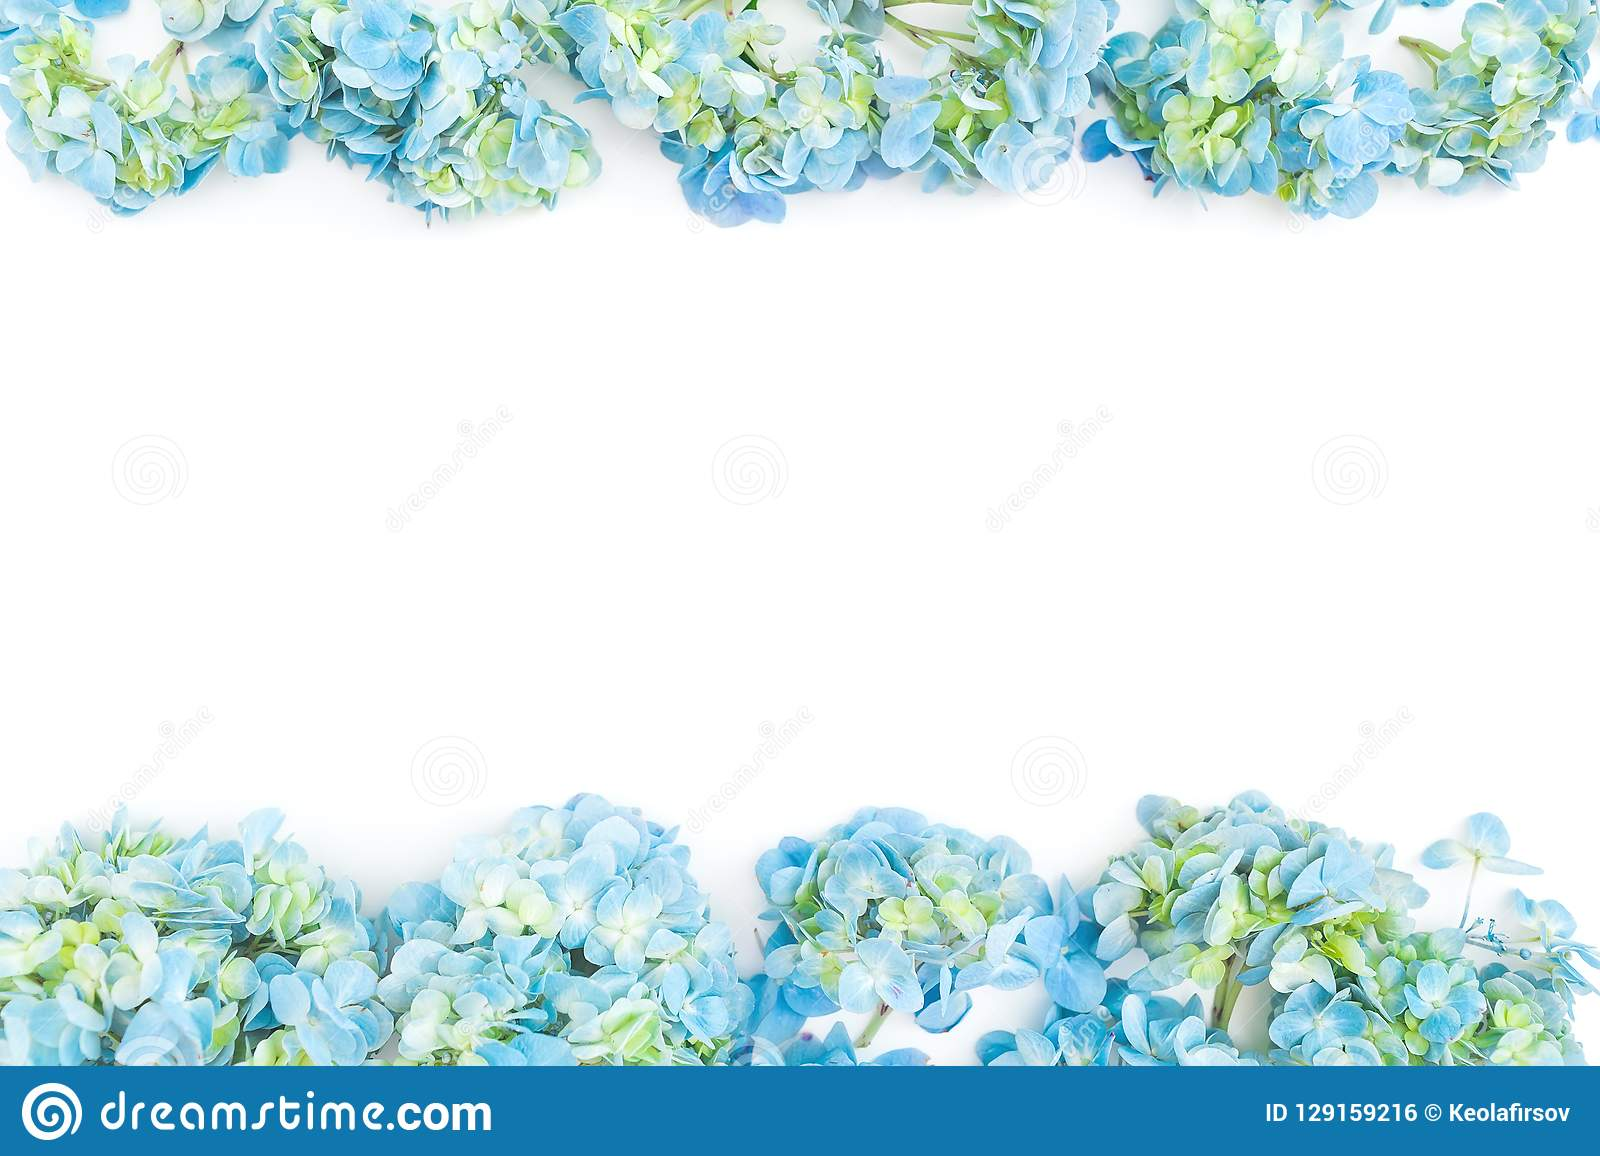 Flower border frame of blue hydrangea flowers on white background. Flat lay, top view. Floral background